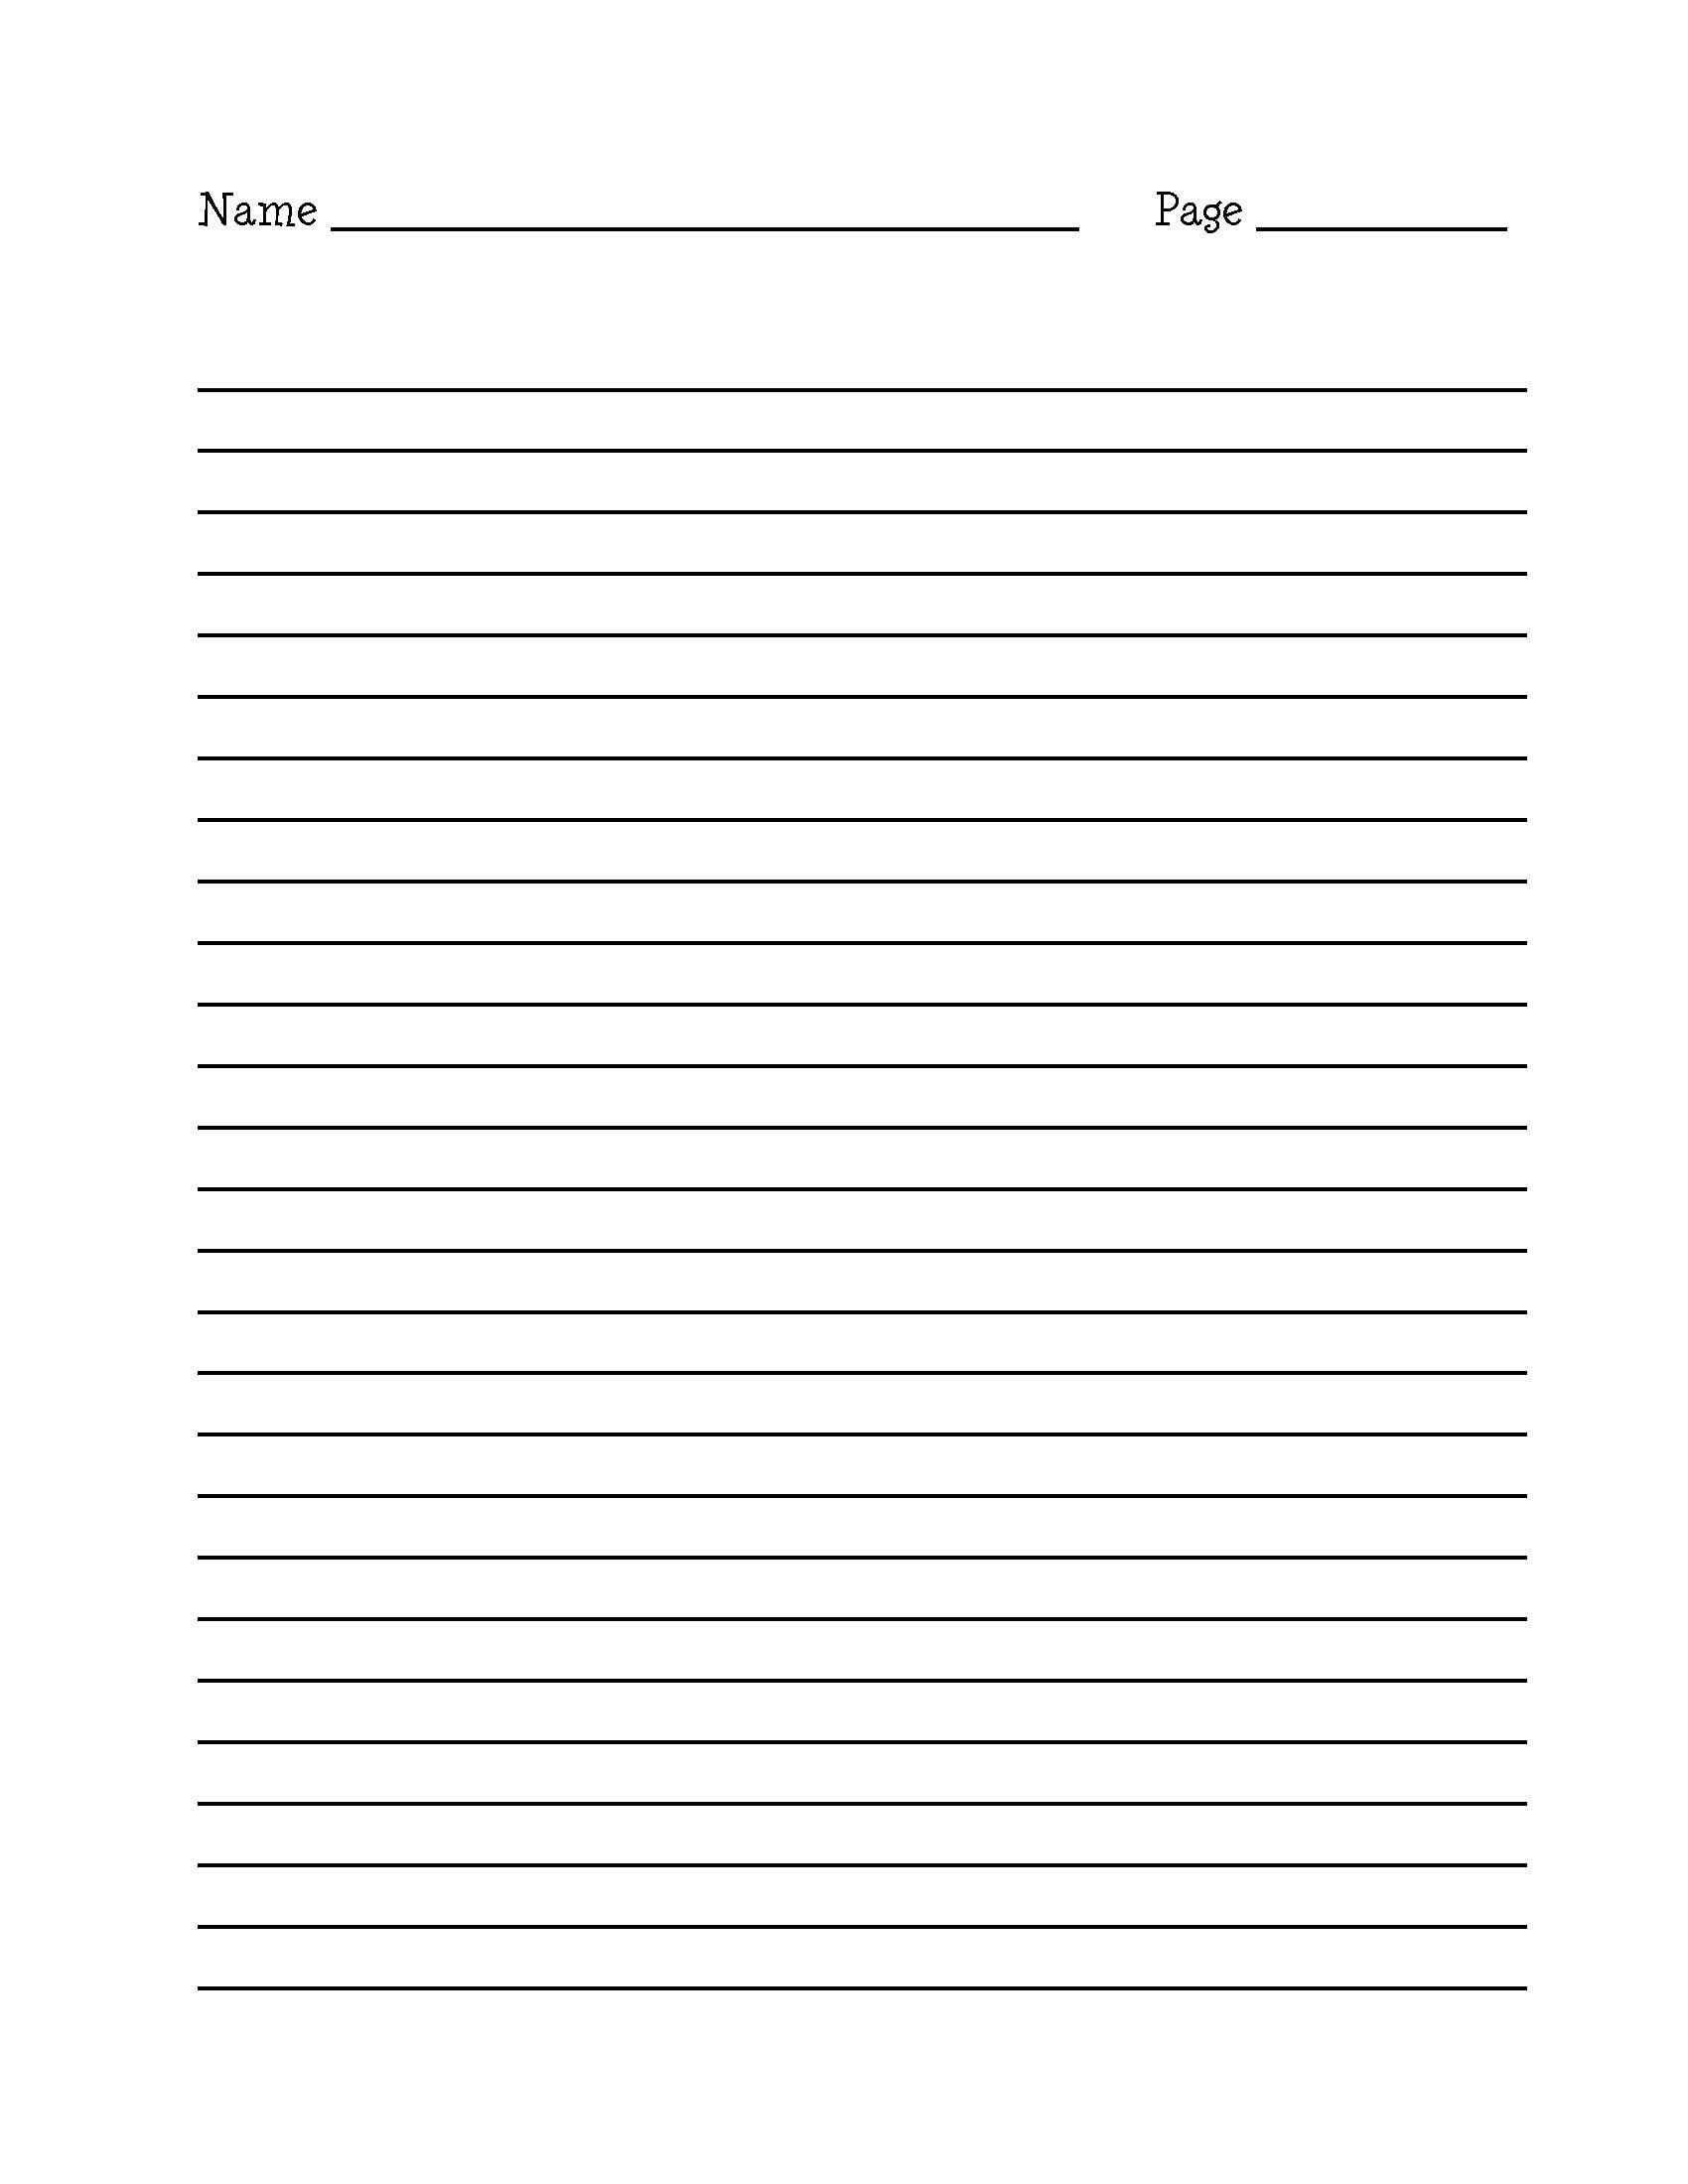 Blank Editable Lined Paper Template Word Pdf – Lined Paper Printables